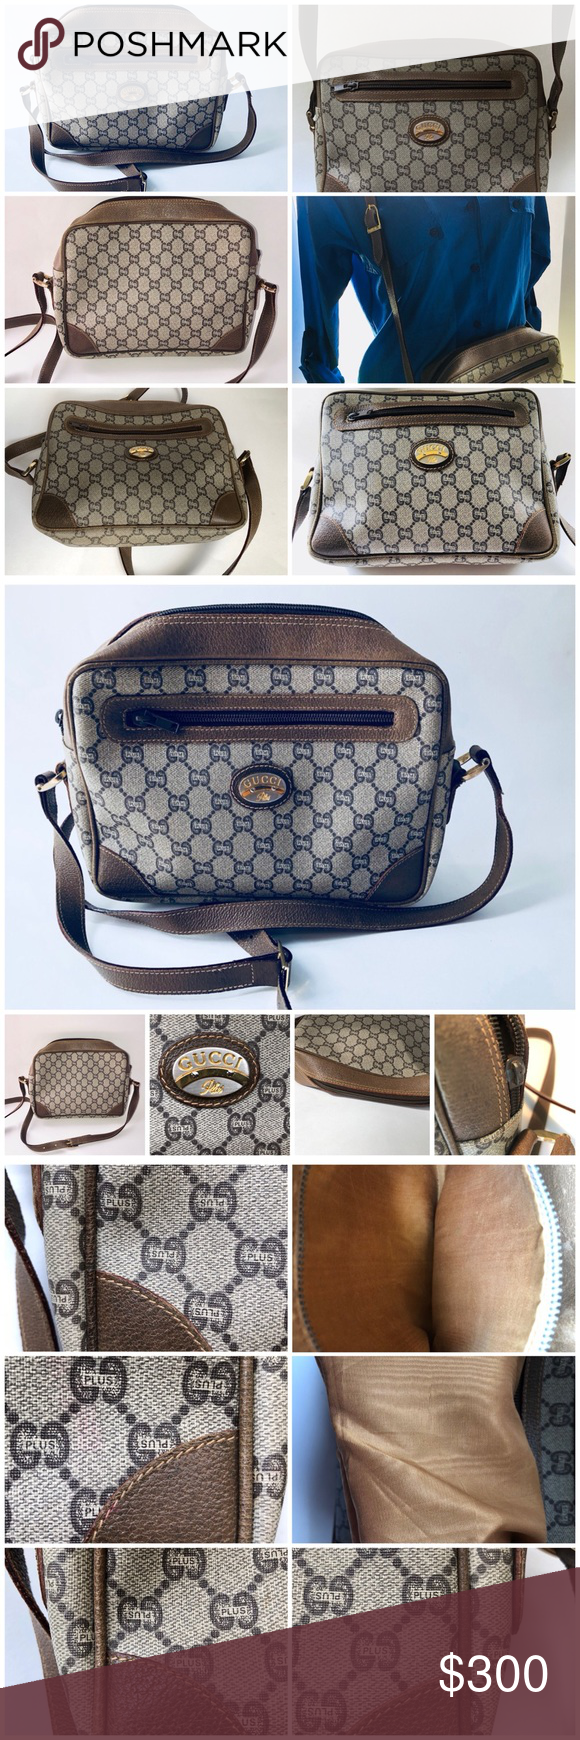 49a09f476d25 Spotted while shopping on Poshmark: Vintage GUCCI PLUS CLASSIC MONOGRAM  CROSSBODY BAG! #poshmark #fashion #shopping #style #GUCCI PLUS #Handbags